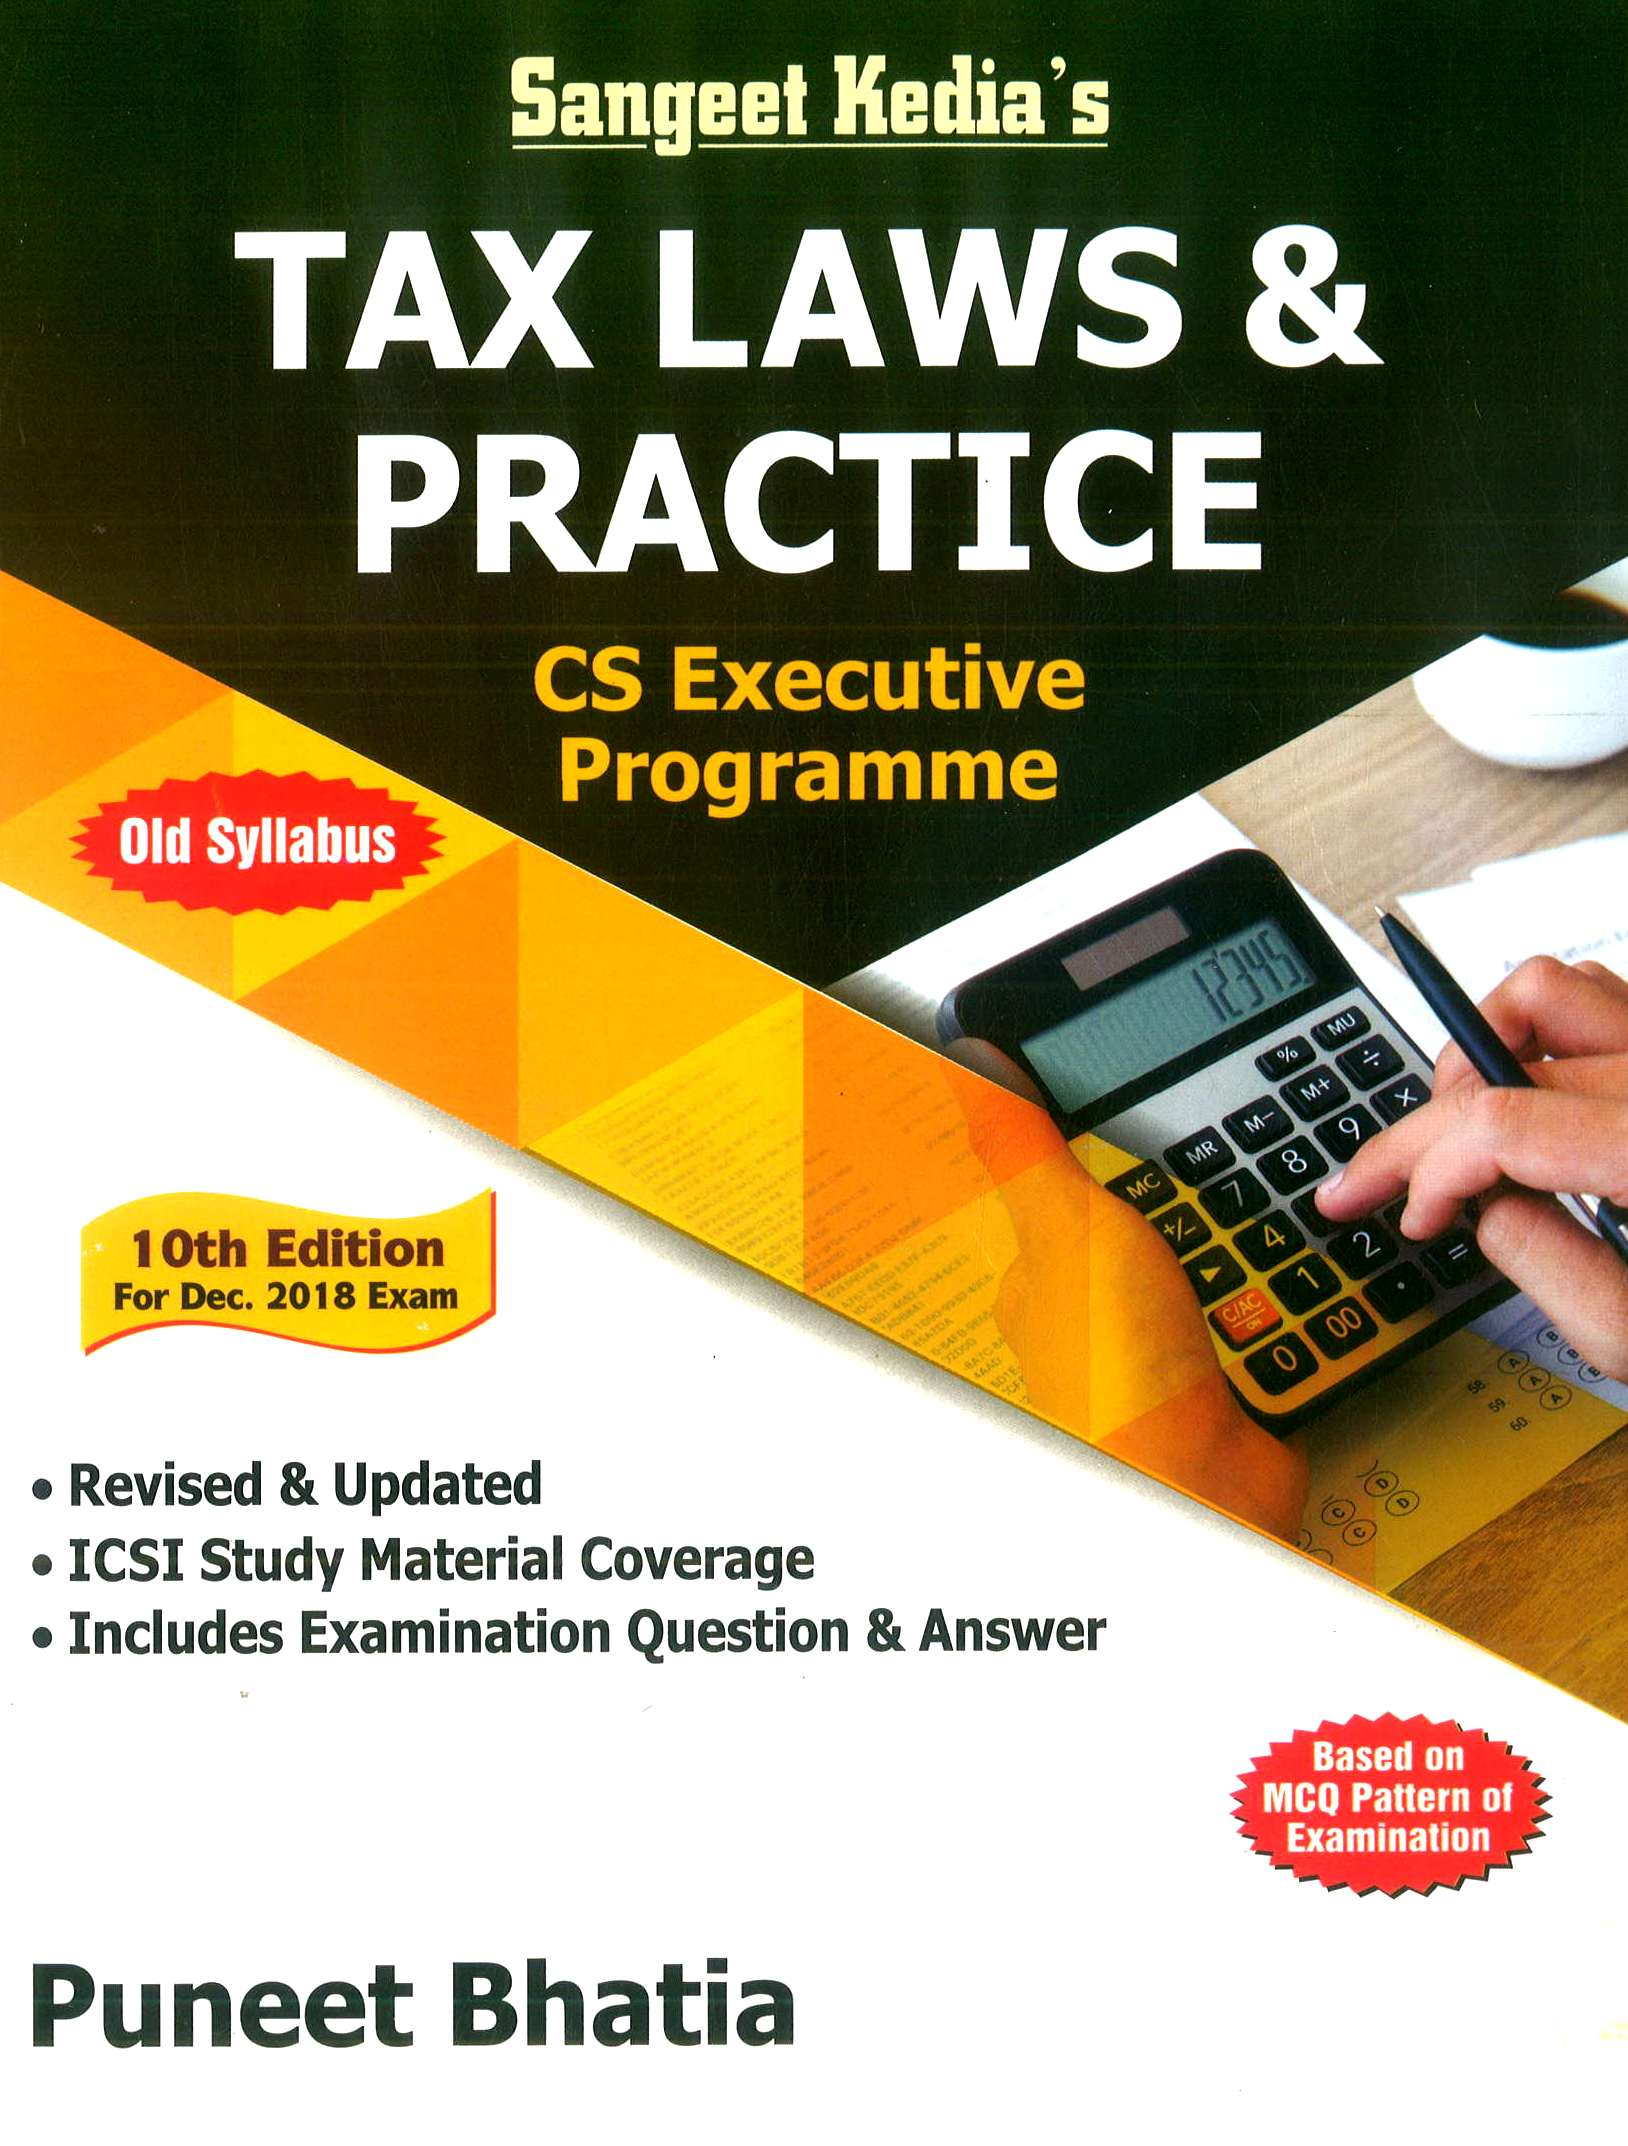 Sangeet Kedia Tax Laws and Practice for CS Executive by Puneet Bhatia and Abhishek Mittal Applicable for Dec 2018 Exam (Pooja Law House Publishing) Edition 10th, 2018